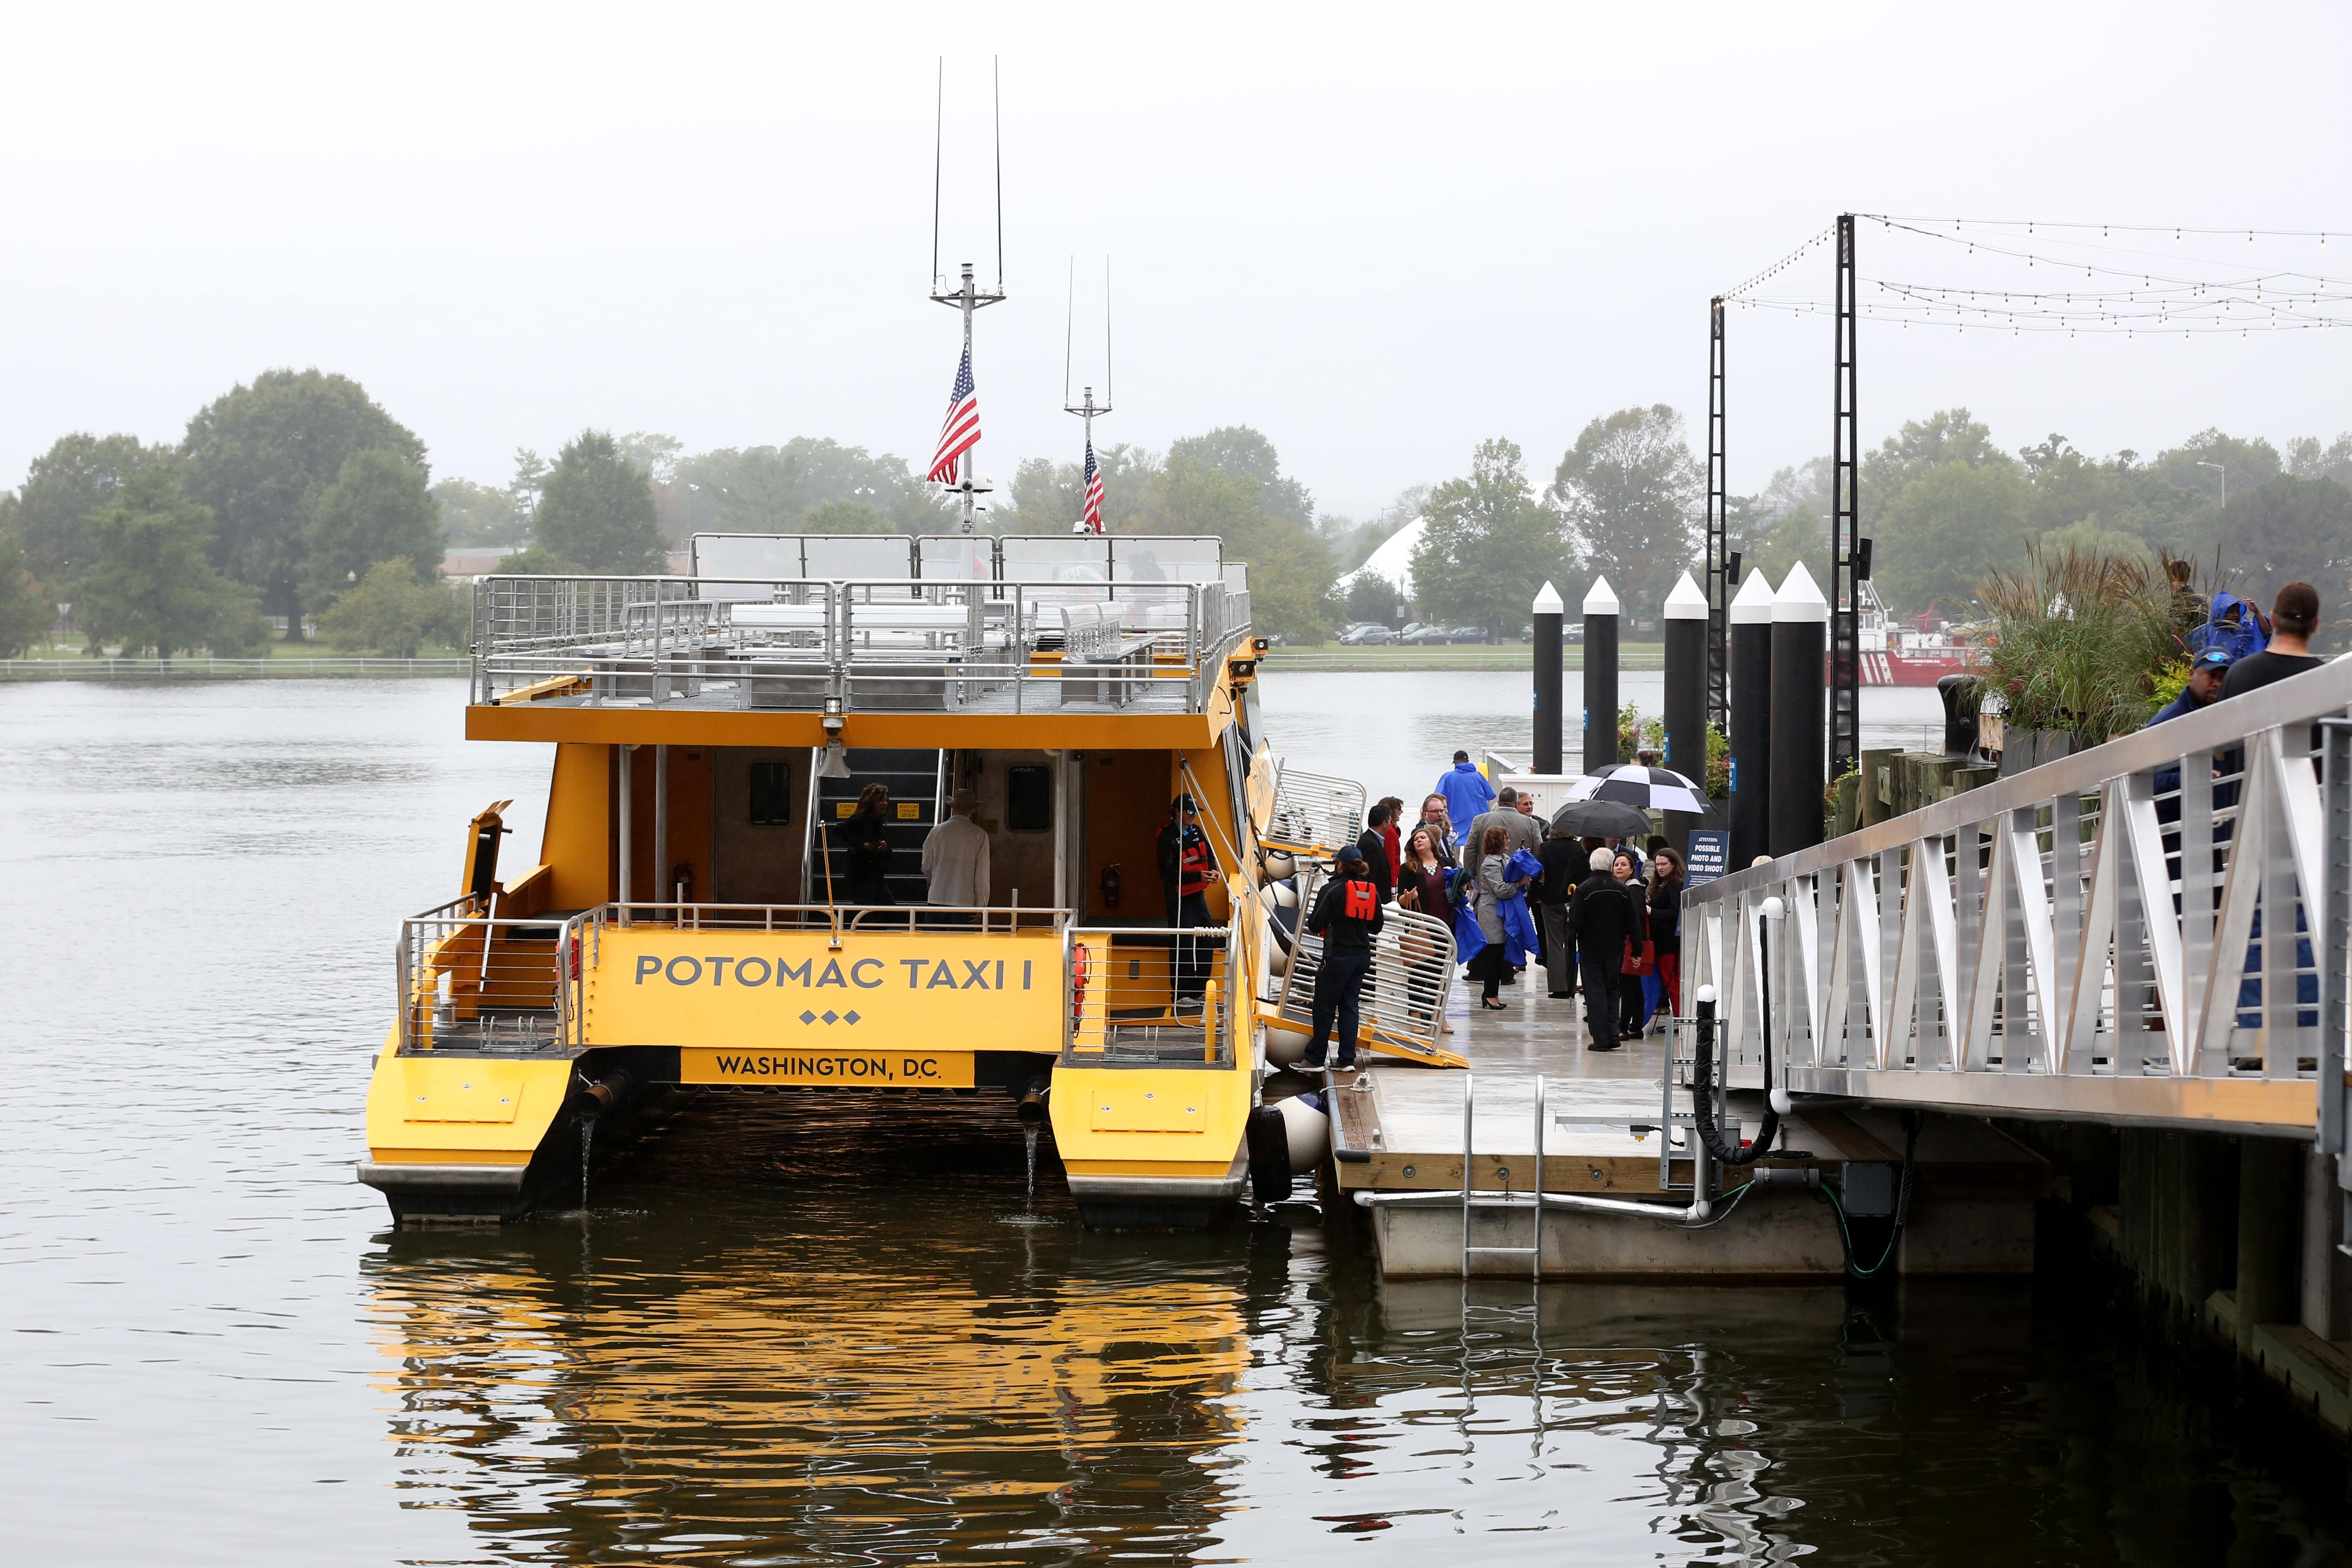 The water taxi that visitors can use to get around the Potomac.{&amp;nbsp;} (Amanda Andrade-Rhoades/DC Refined)<p></p>